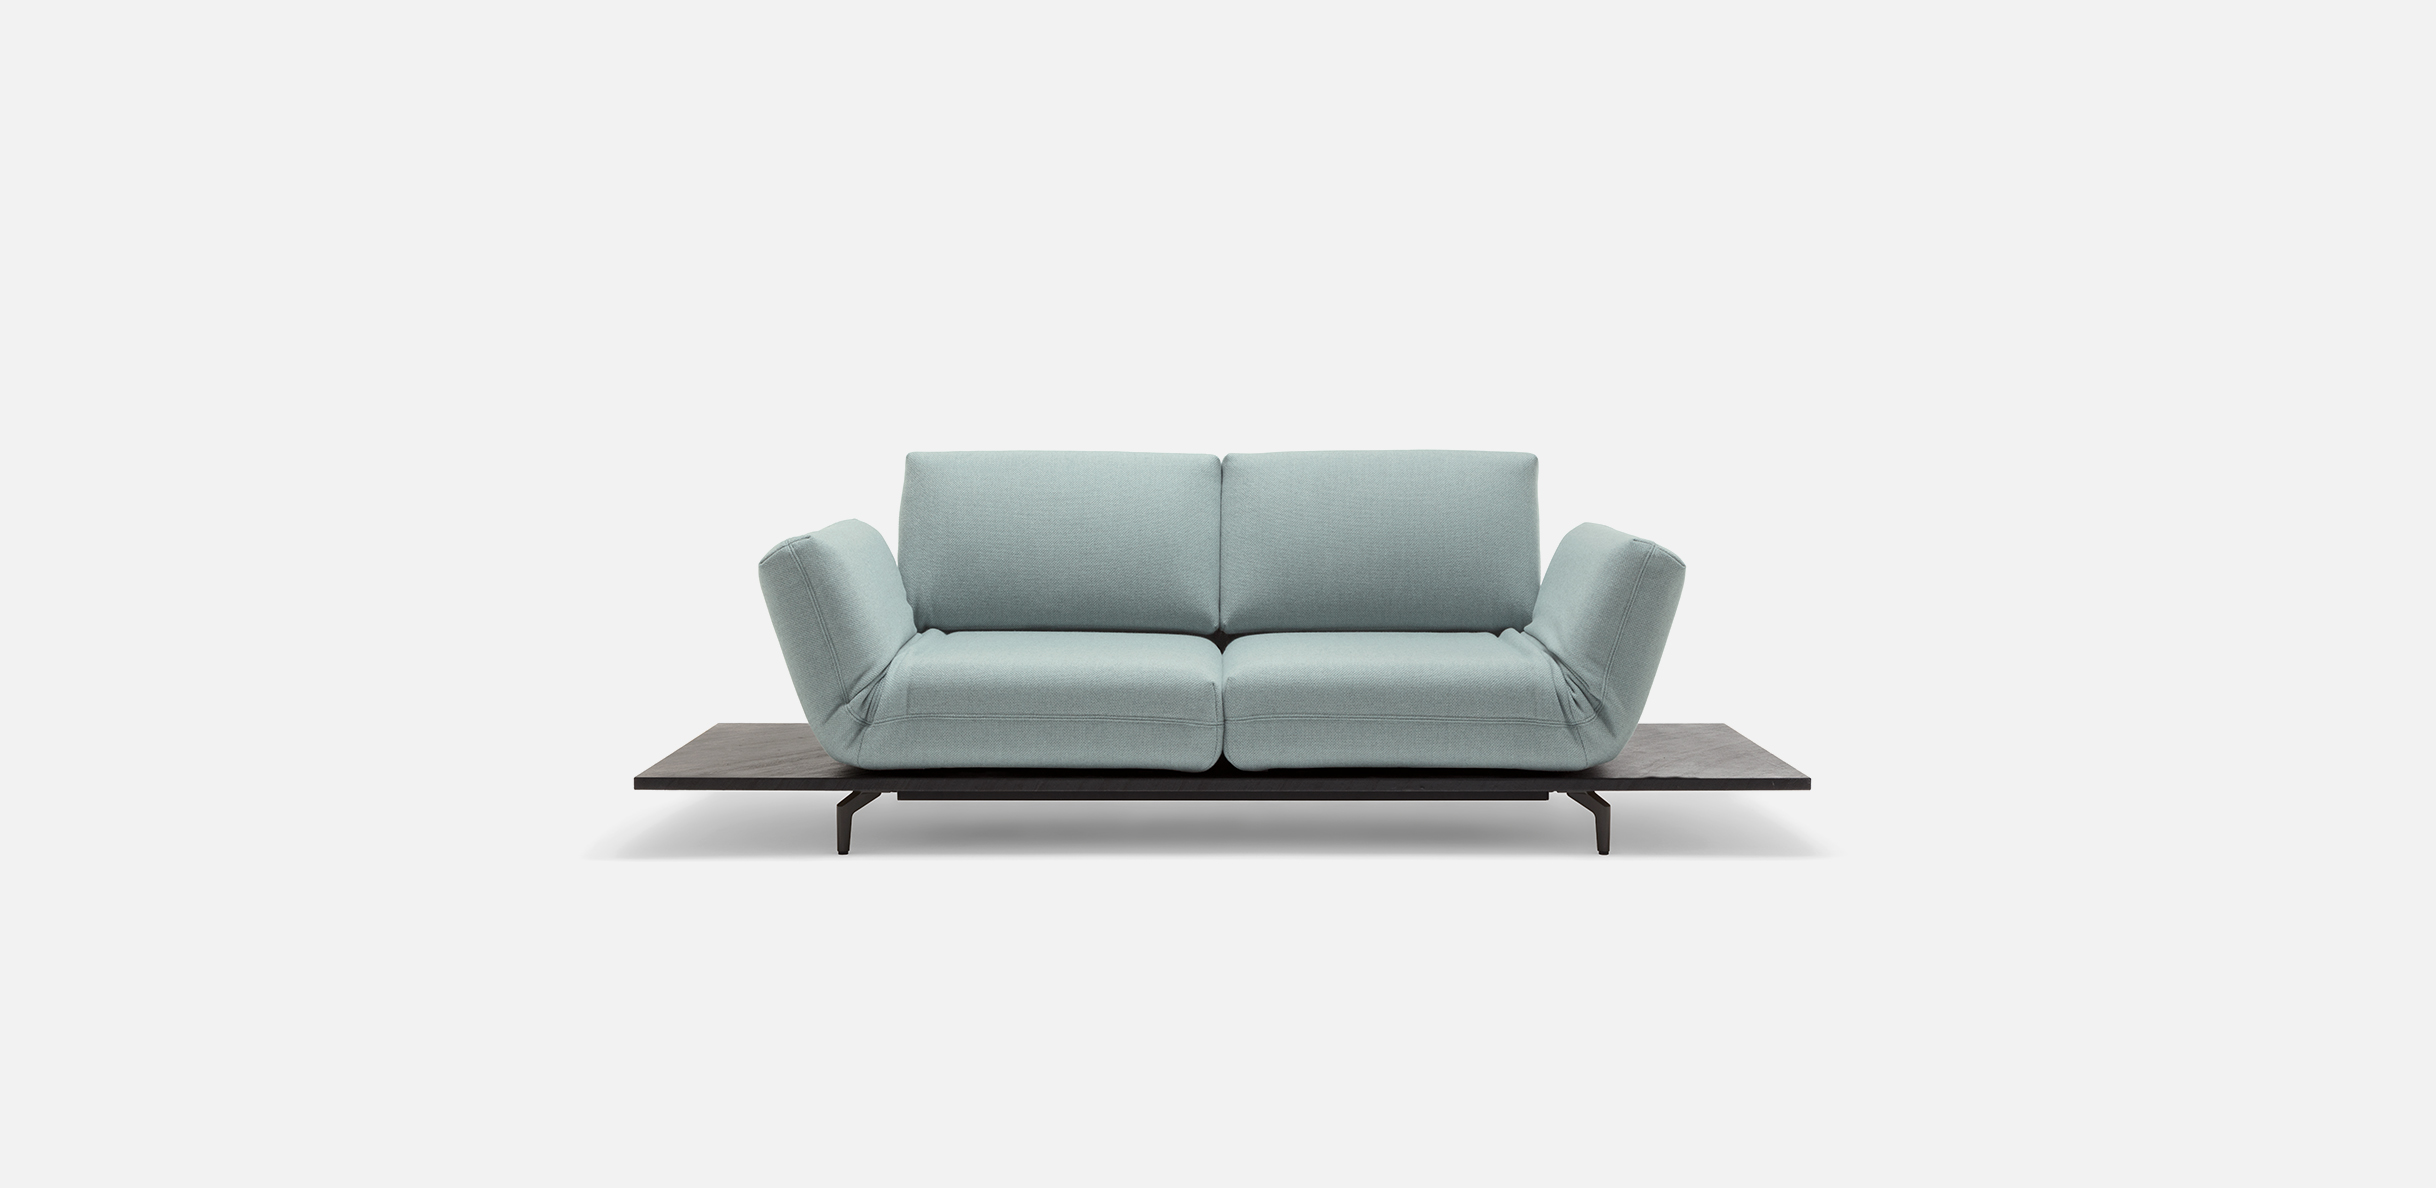 Bettsofa Rolf Benz Aura